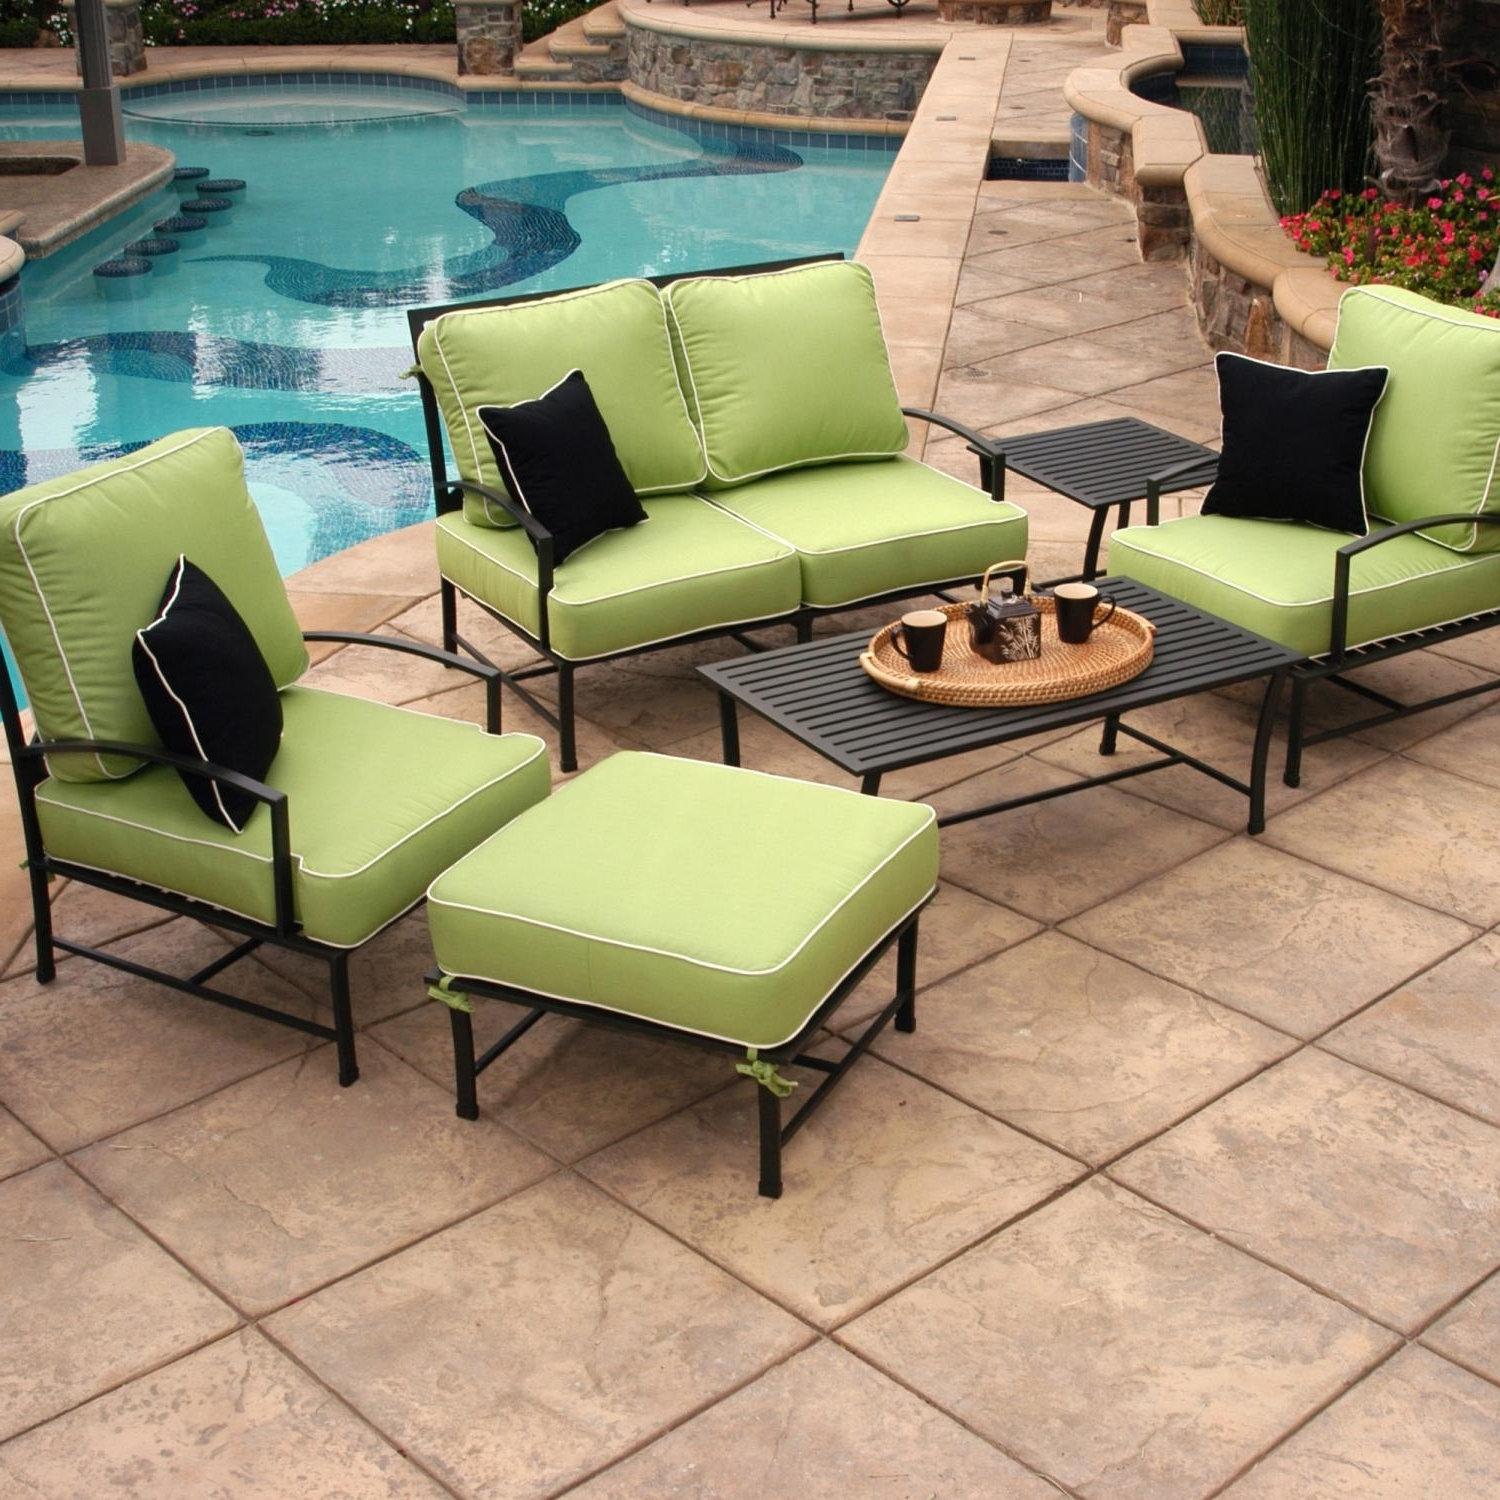 Aluminum Patio Conversation Sets Regarding Most Up To Date Caluco San Michele 4 Person Aluminum Patio Conversation Set (View 4 of 20)